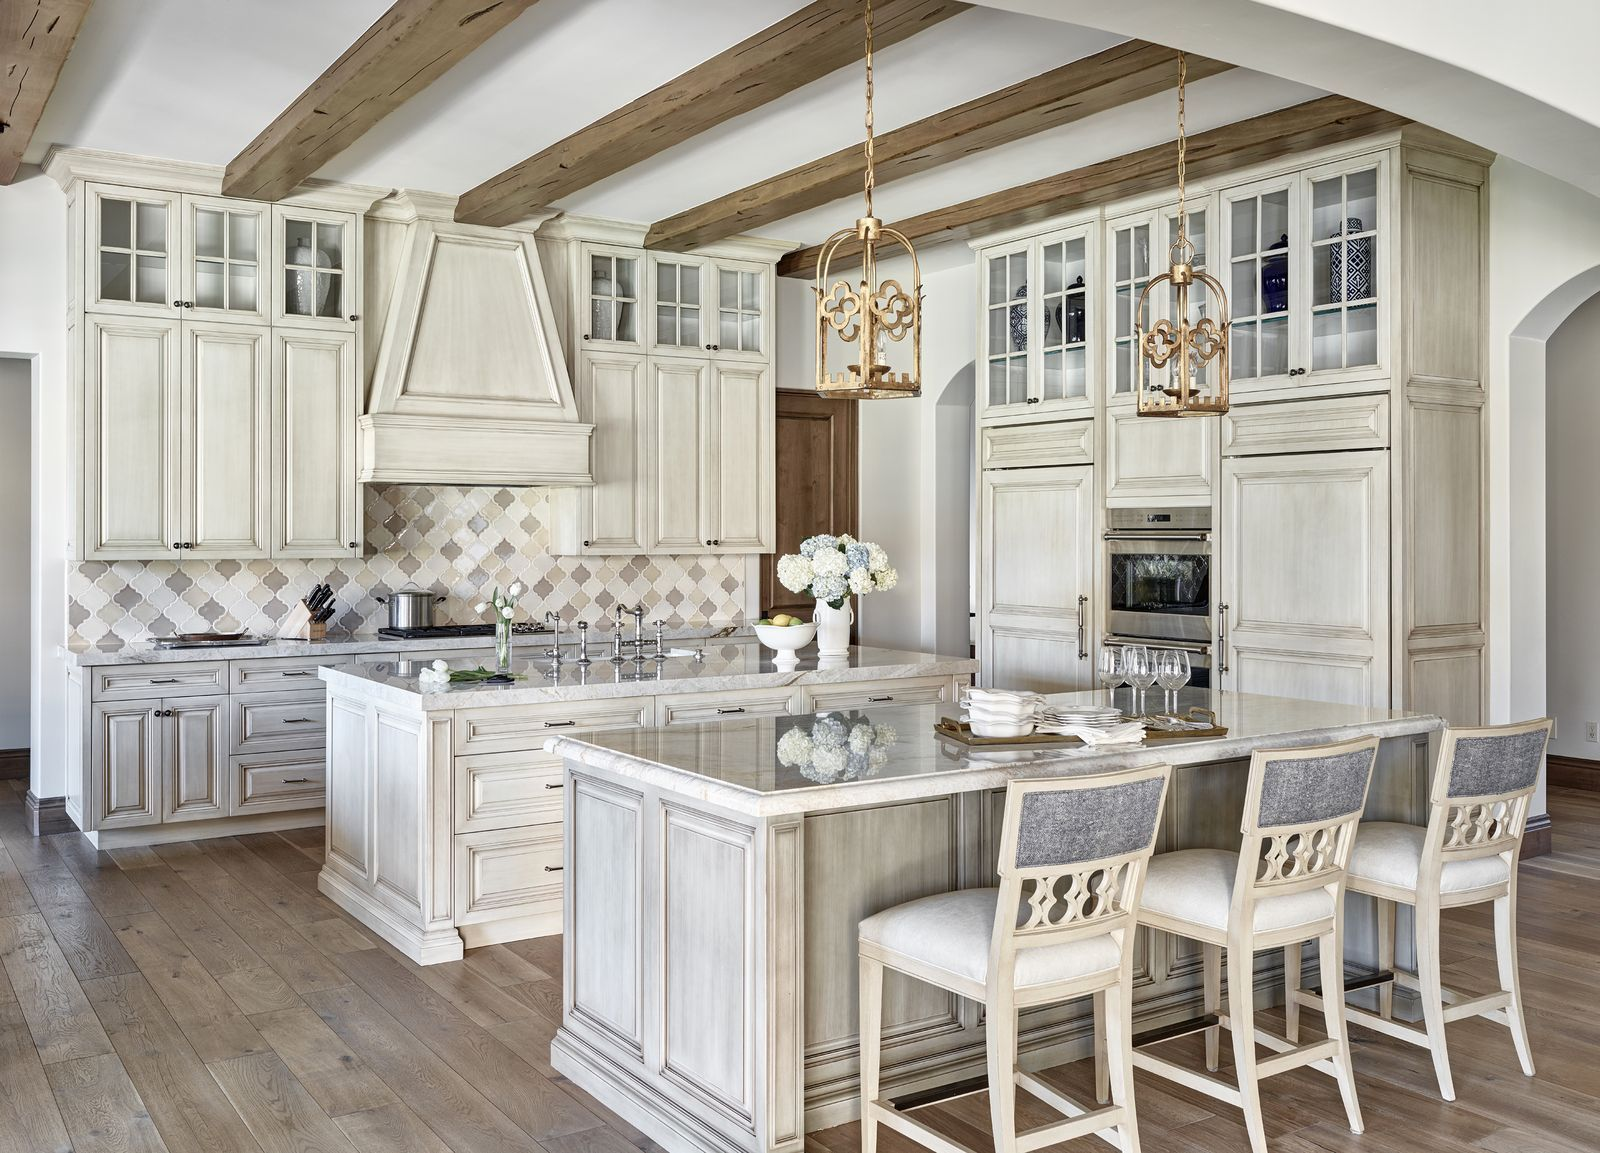 28 Stylish Kitchens With Concealed Range Hoods In 2020 Antique White Kitchen Shabby Chic Kitchen Grey Kitchen Cabinets